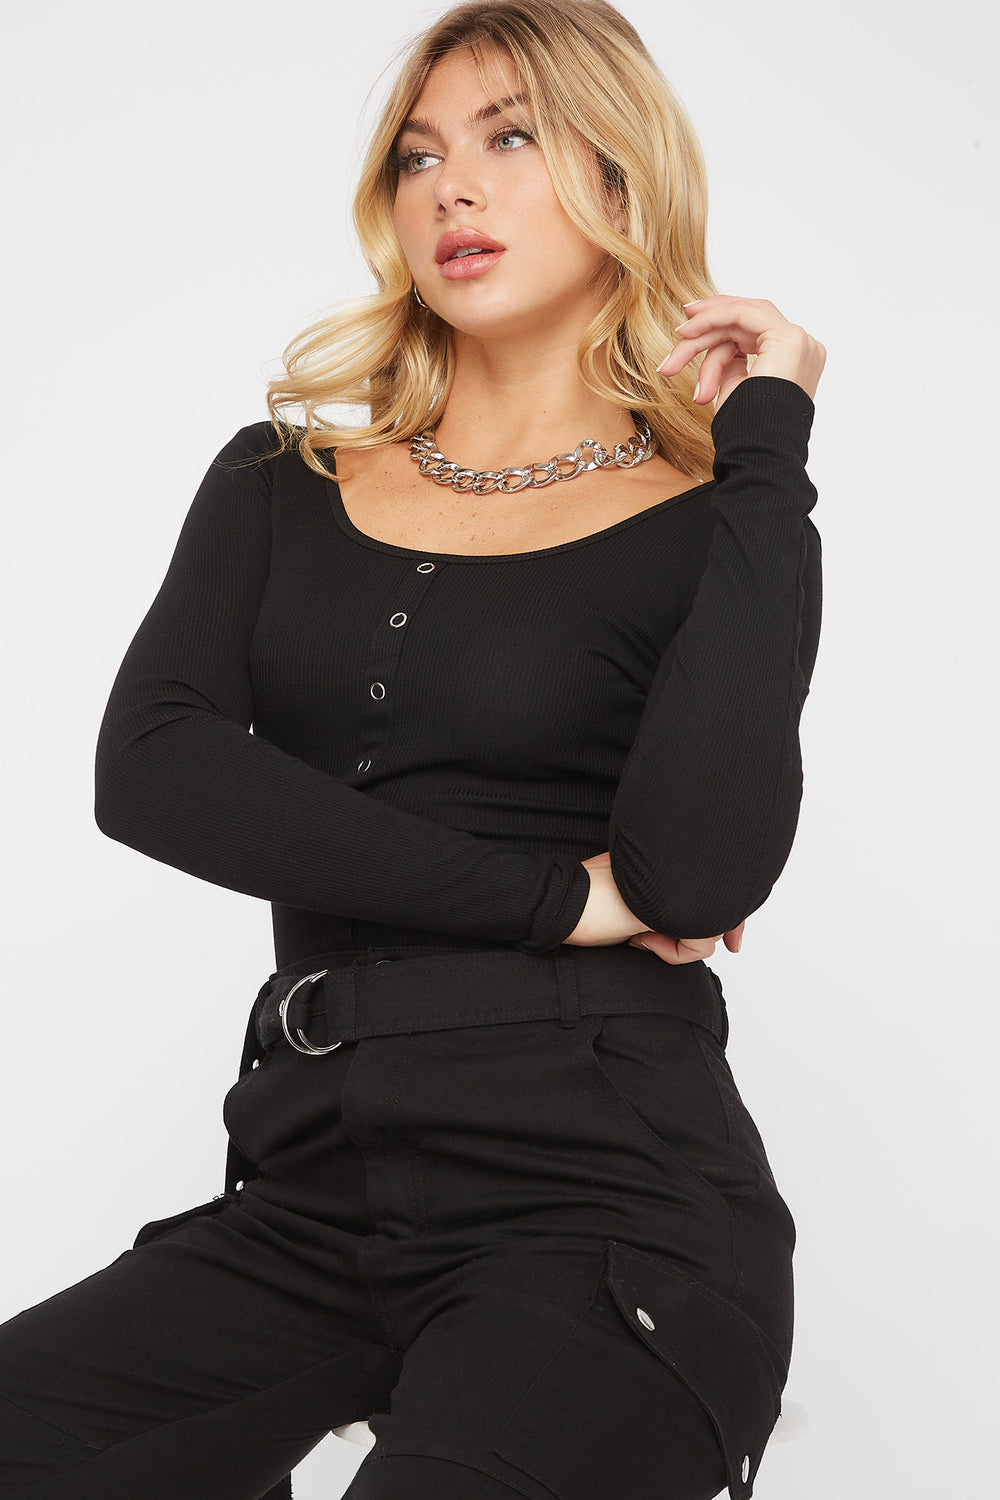 Ribbed Square Neck Snap Button Long Sleeve Black